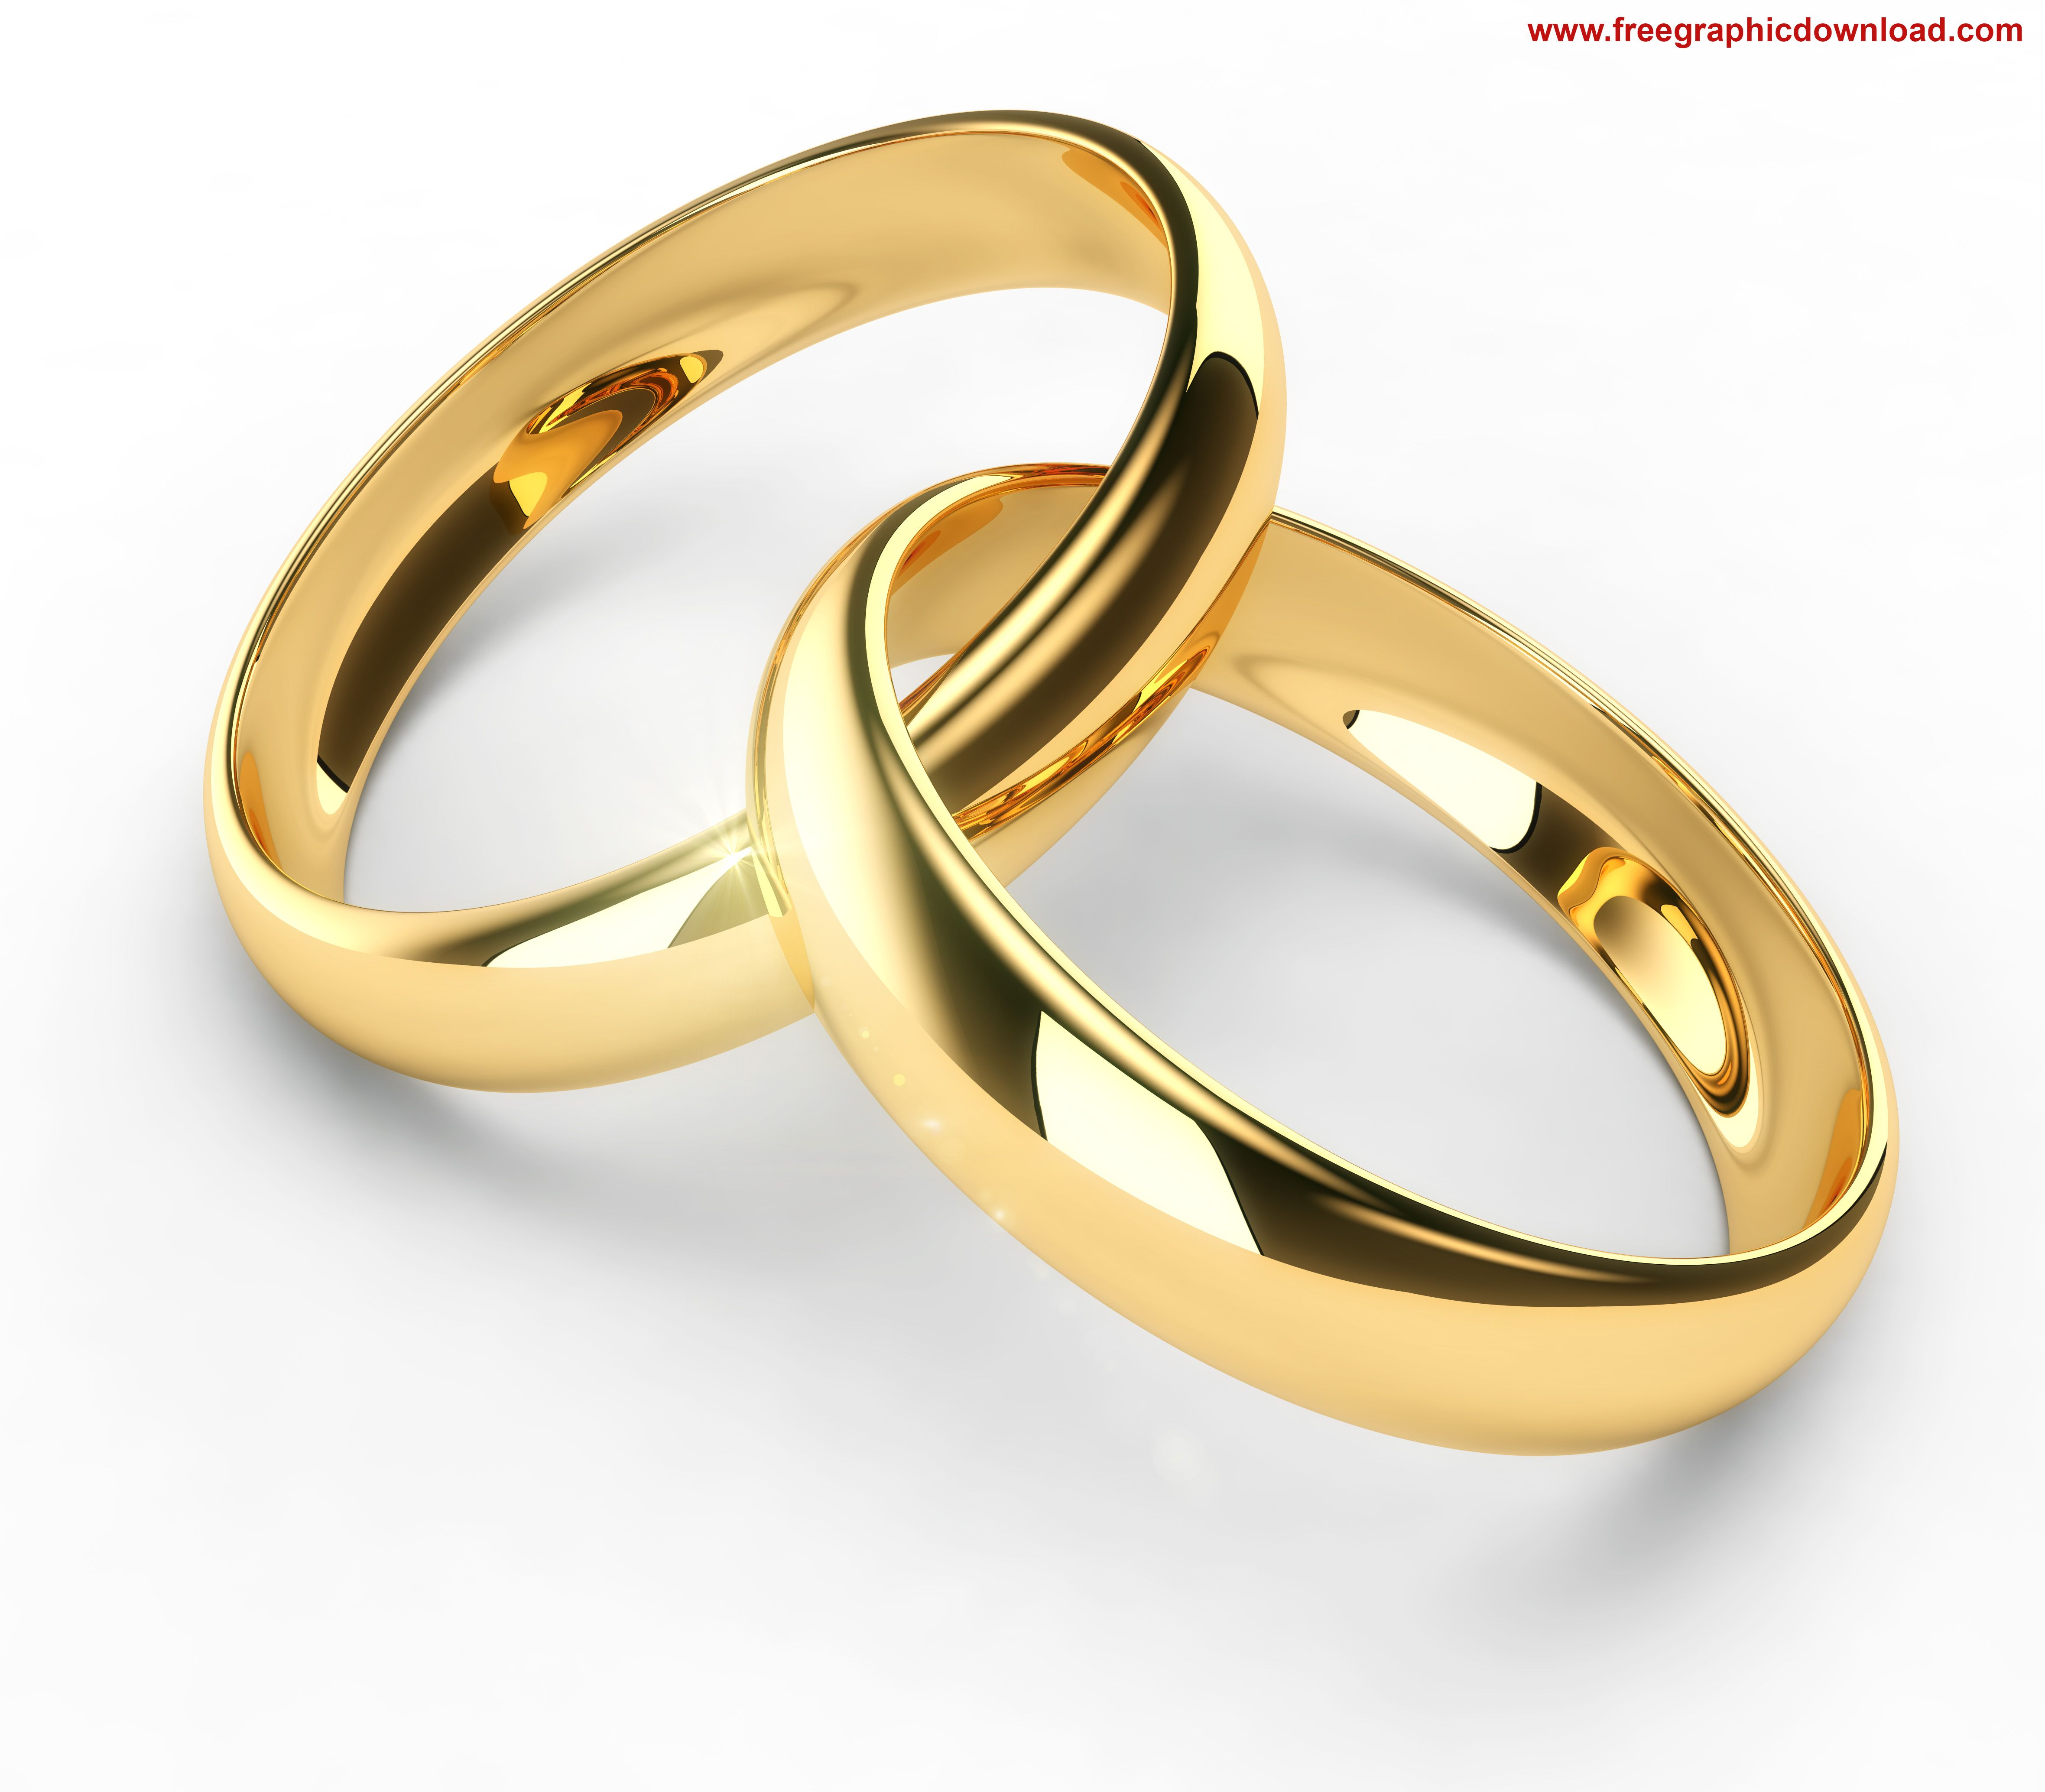 Beautiful Pic Of Wedding Ring With High Resolution Gold 2017 Wedding Rings  Free Stock Photo